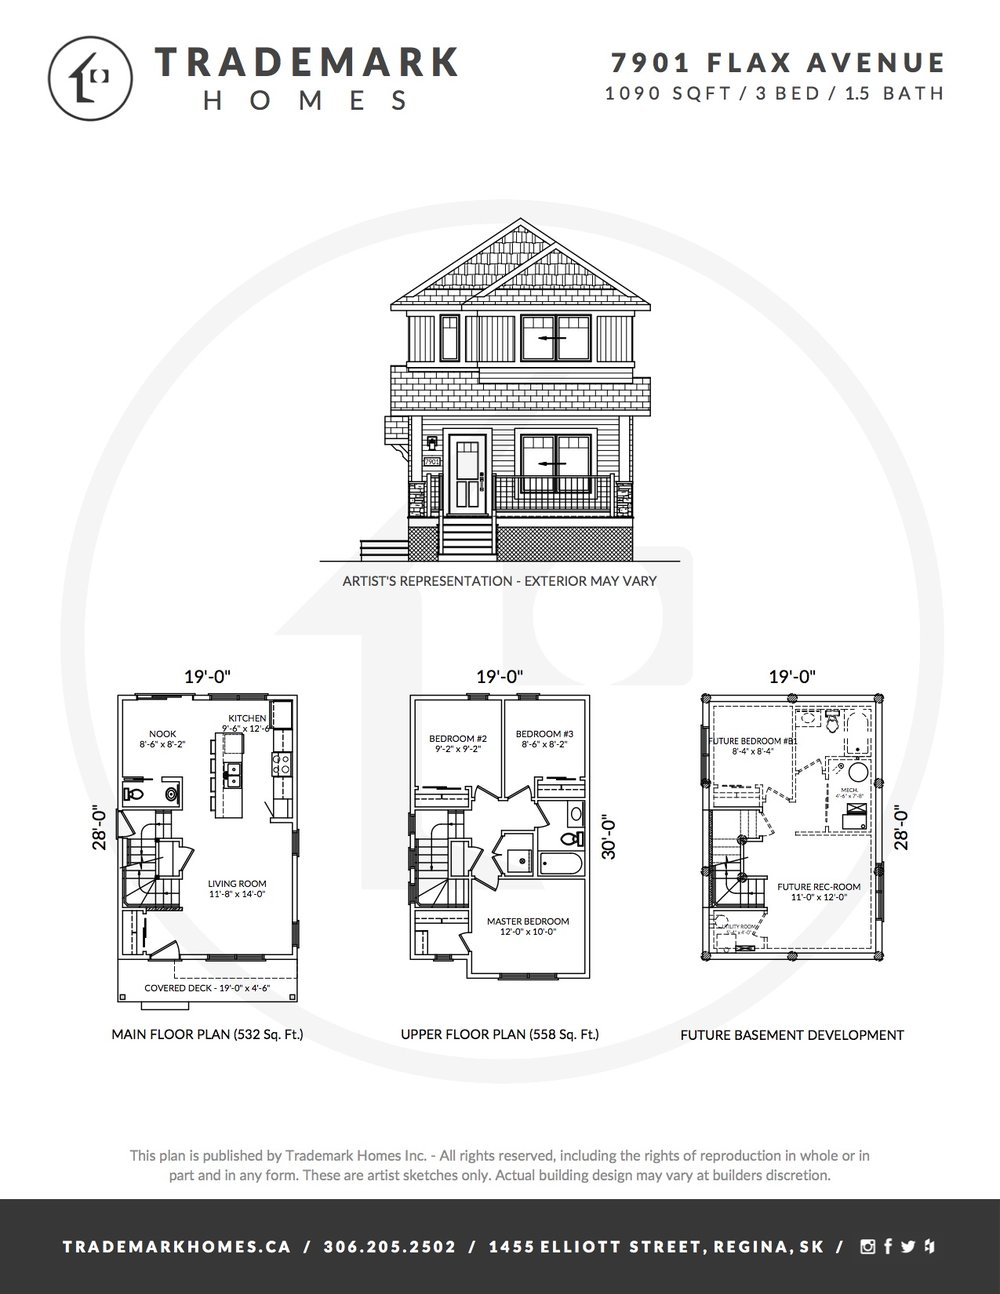 7901 Flax Ave - Westerra - Floorplan - Regina Home Builder